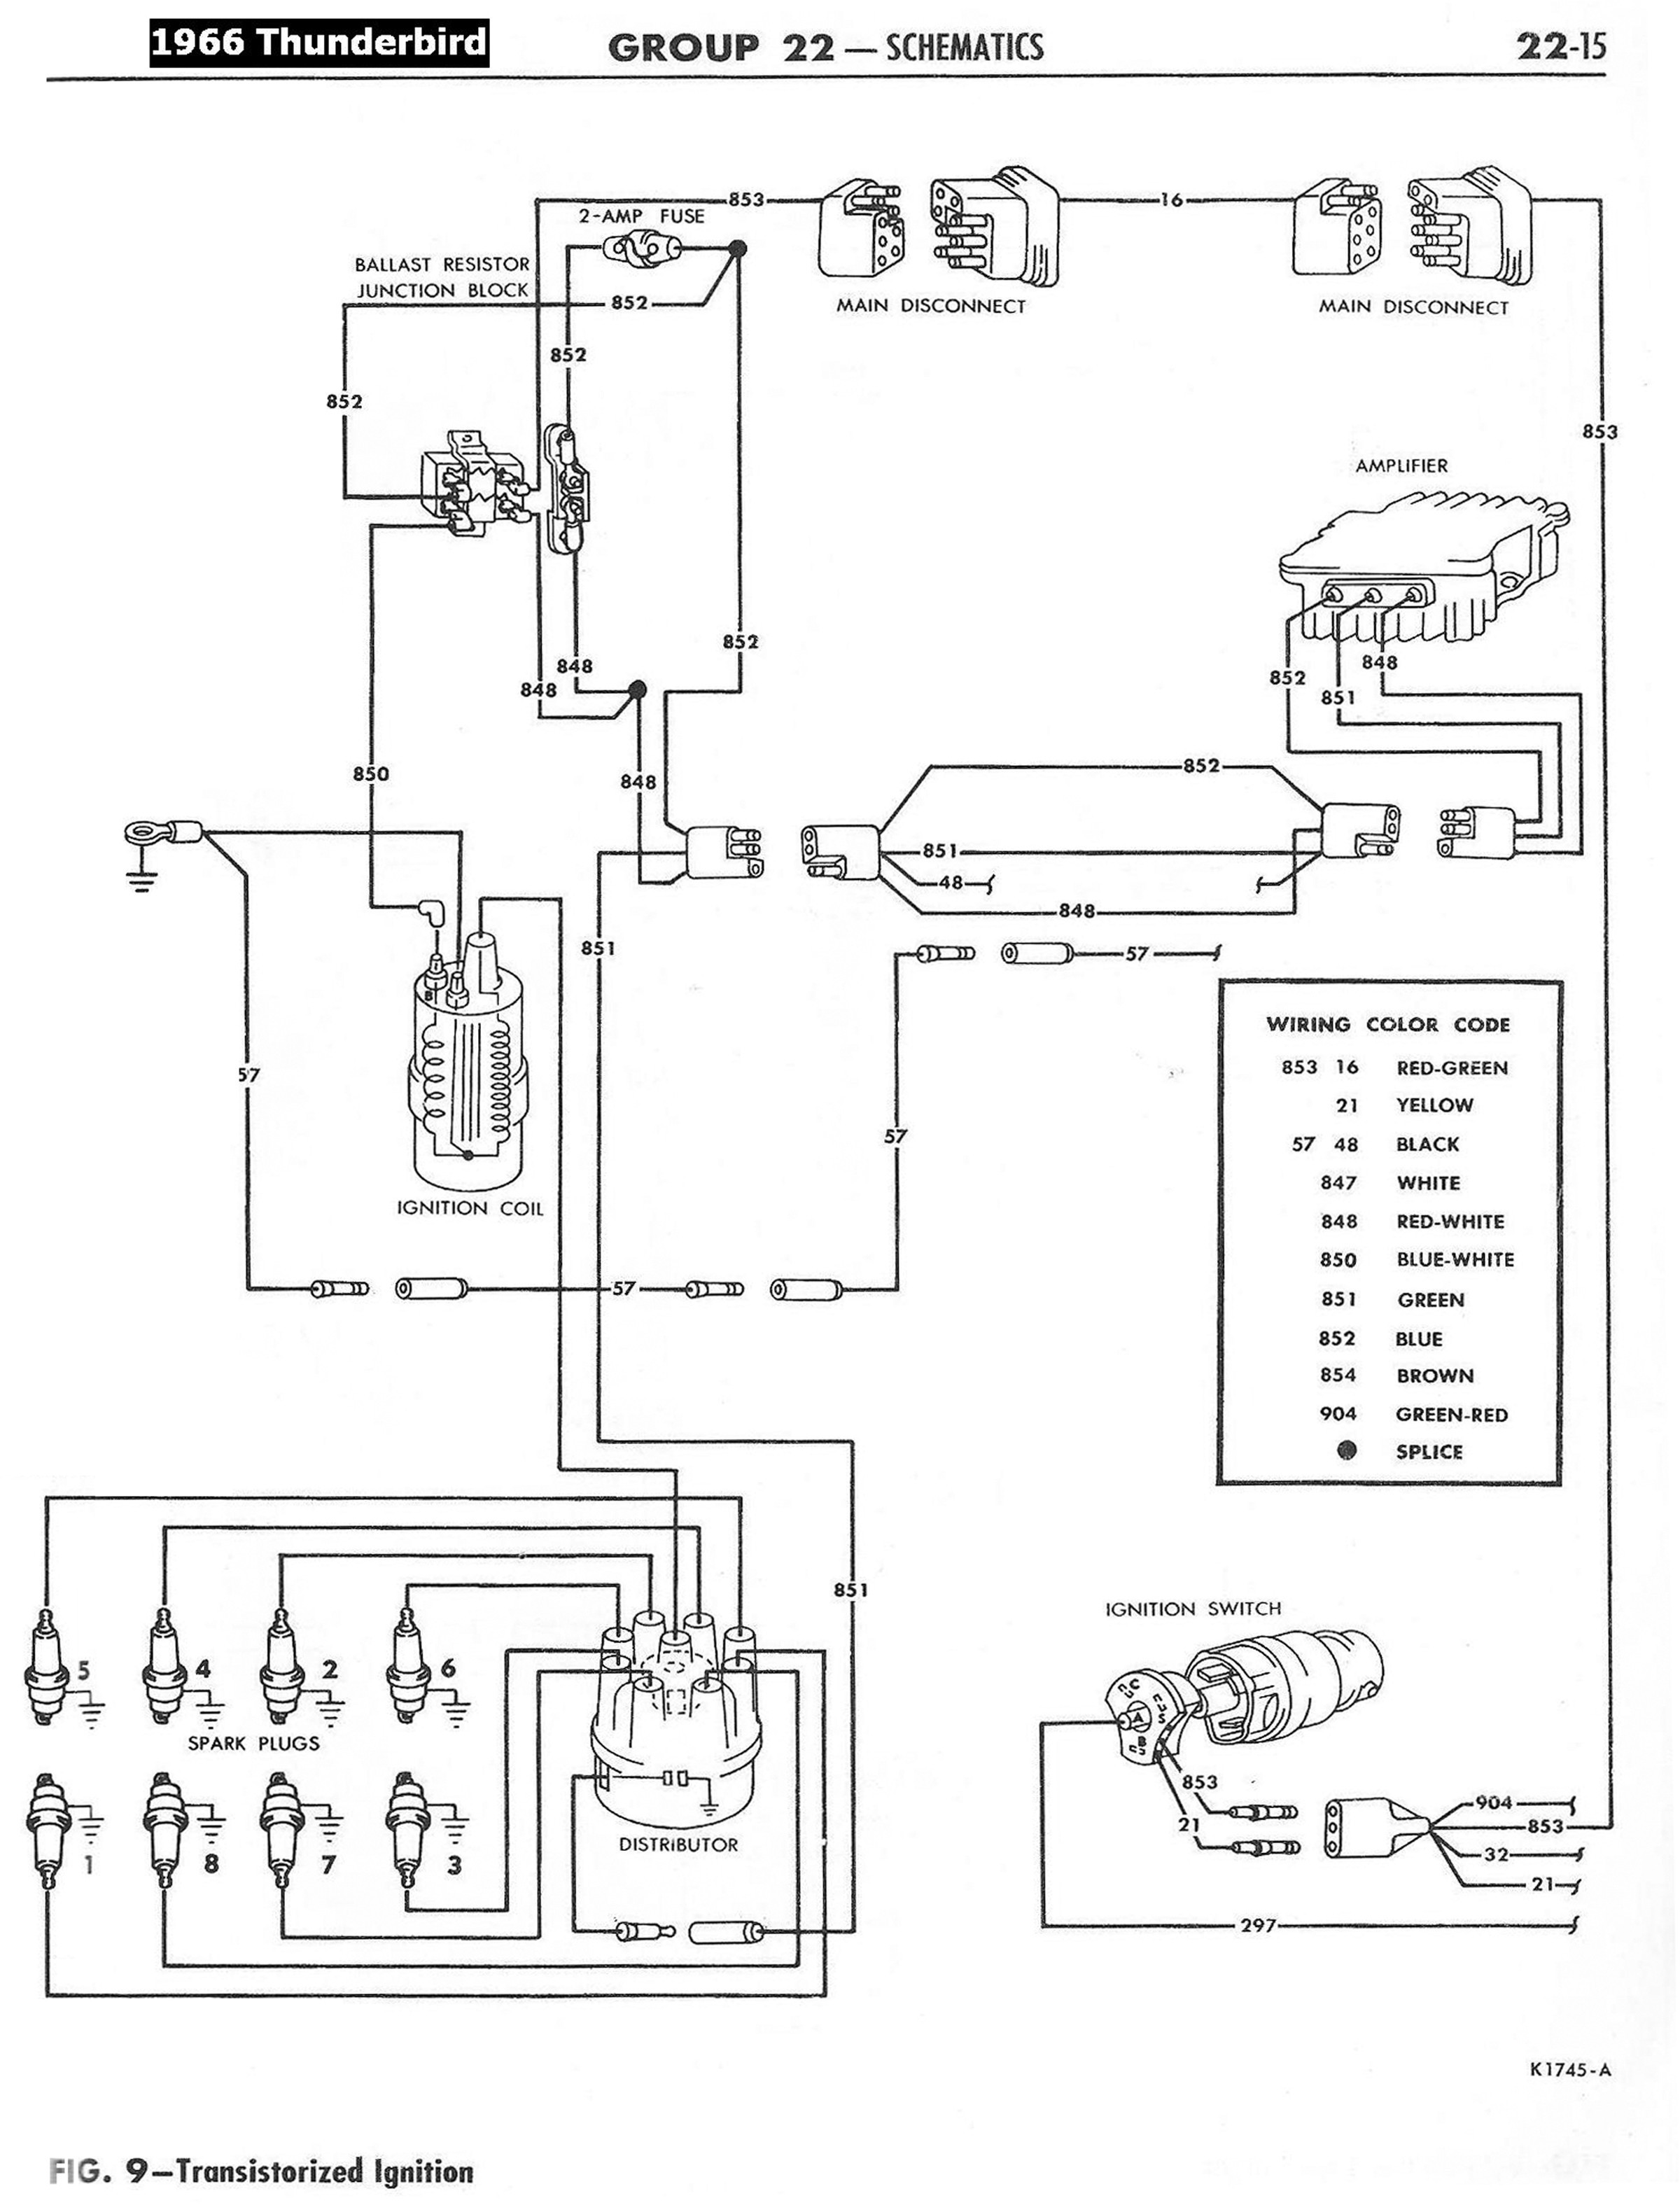 Diagram Of Coil Ignition System Car Ignition System Wiring Diagram Transistor Type Ignition Of Diagram Of Coil Ignition System Car Ignition System Wiring Diagram